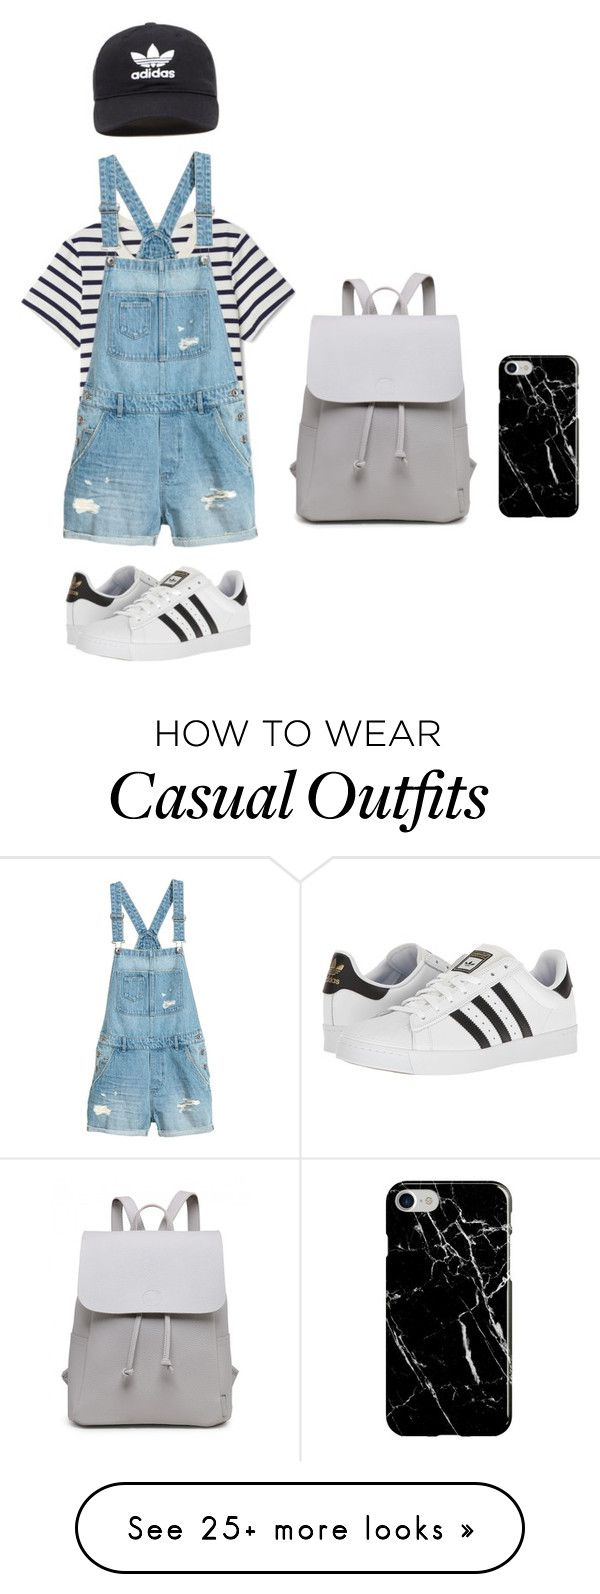 """Casual Adidas"" by sarahmrachel on Polyvore featuring adidas, adidas Originals and Recover"